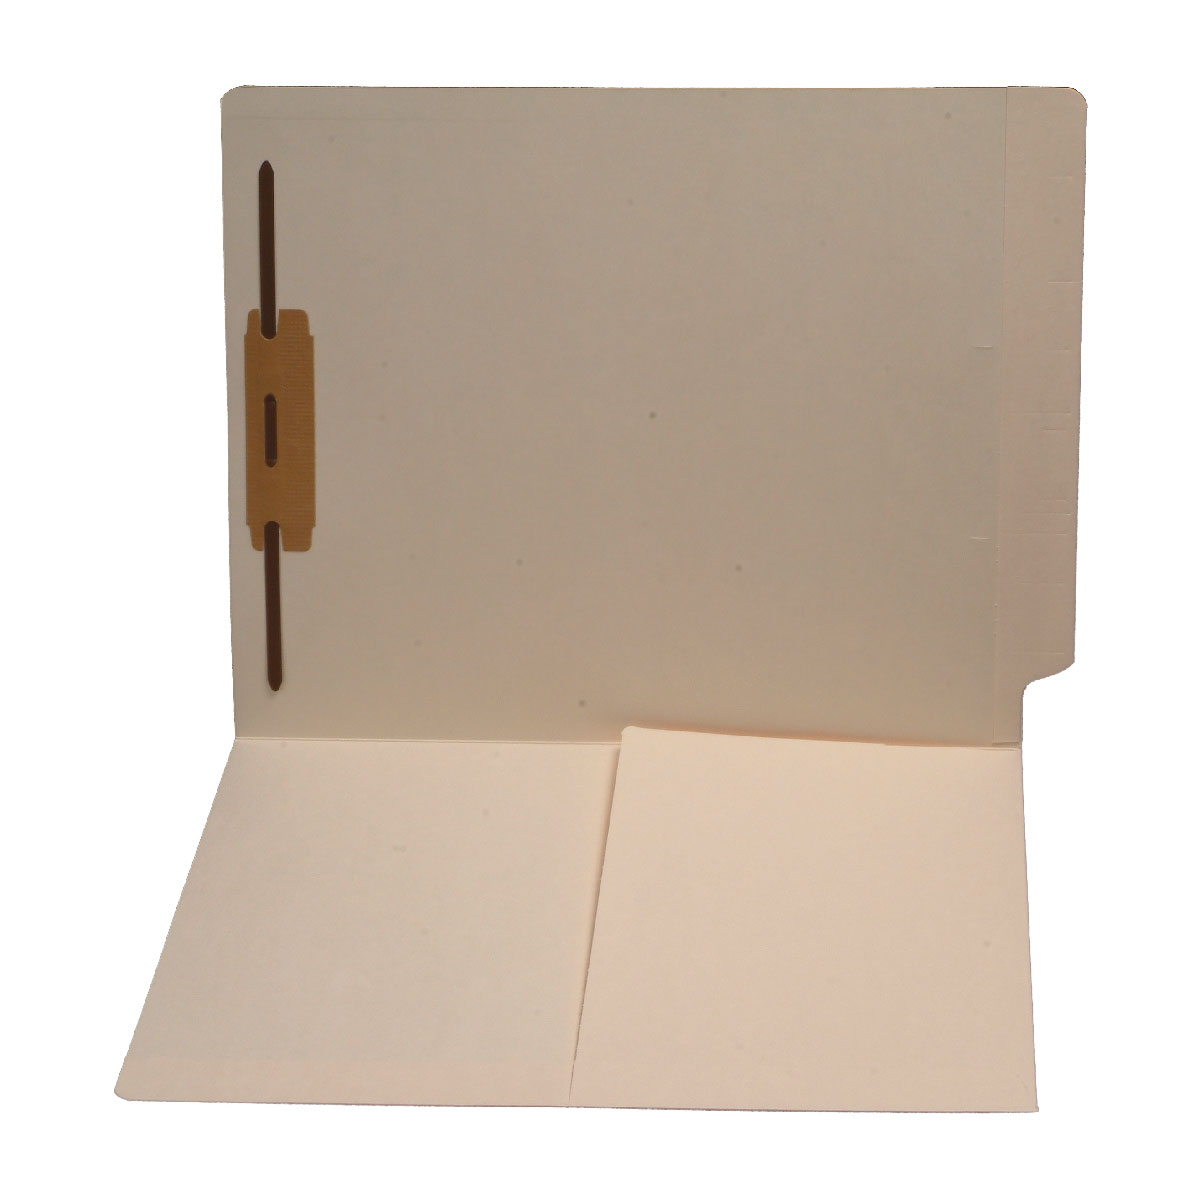 S-9004 - 11 pt Manila Folders, Full Cut End Tab, Letter Size, 1/2 Pocket Inside Front, Fastener Pos #1 (Box of 50)